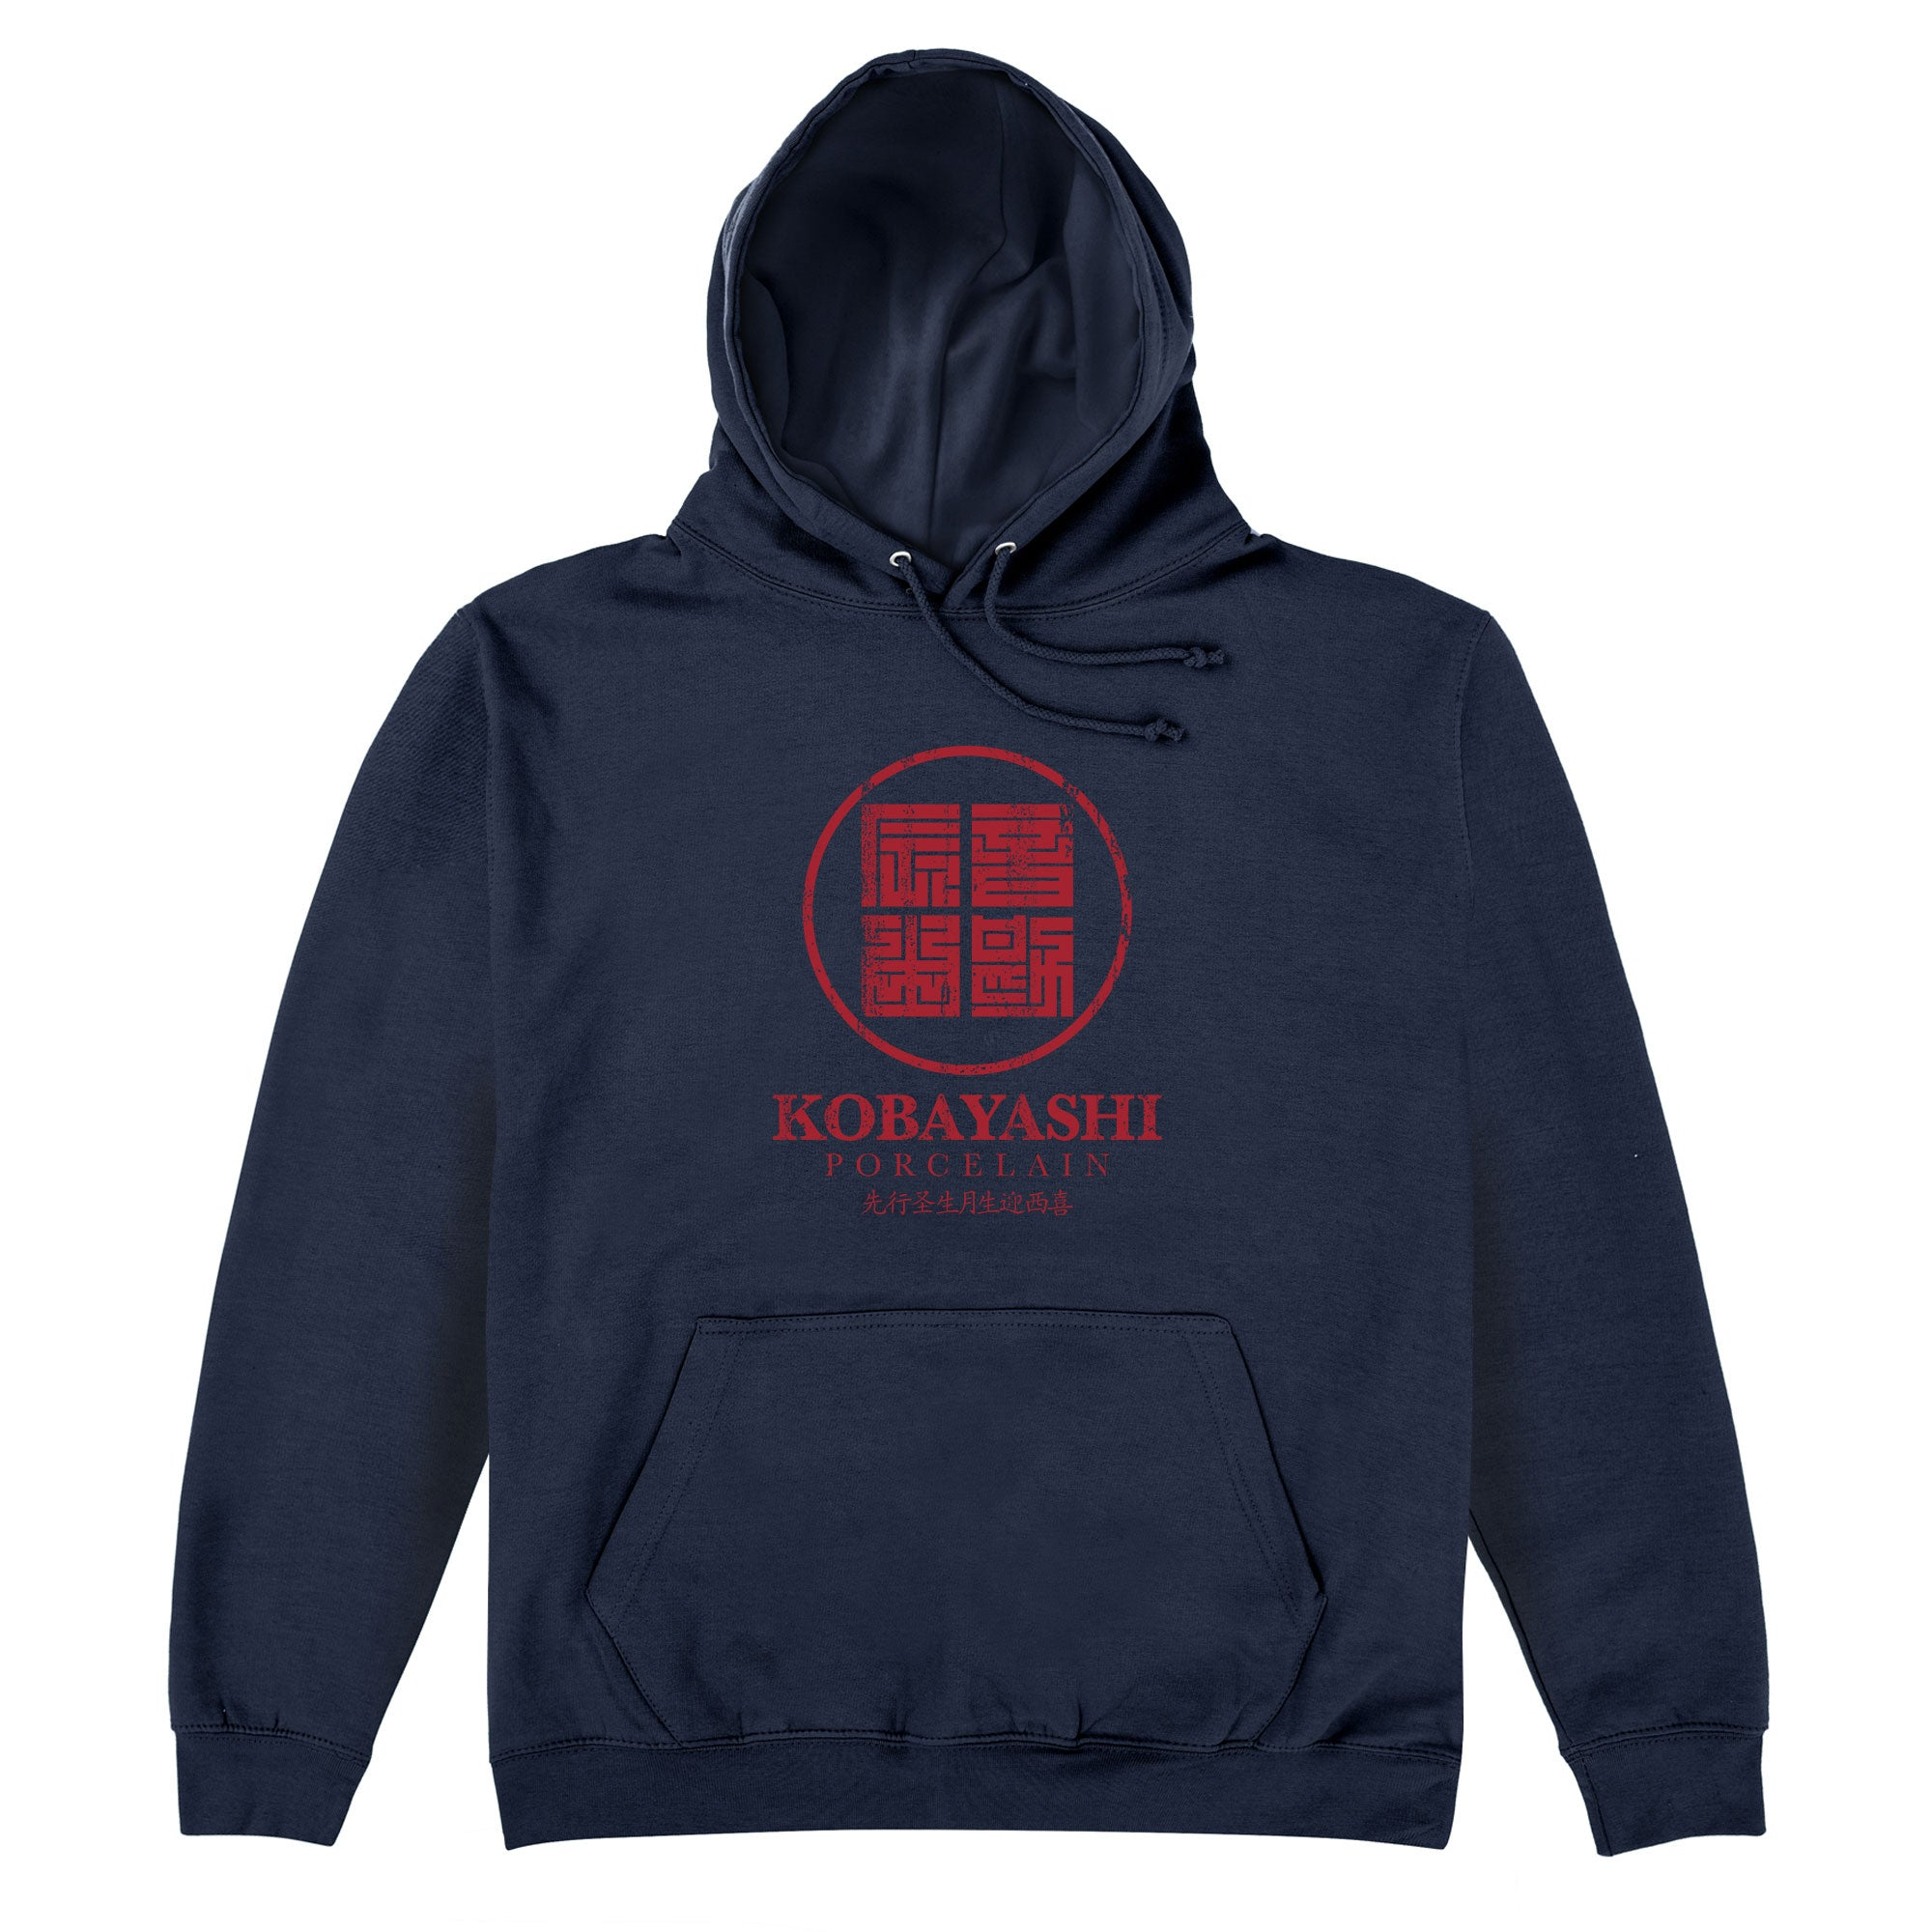 CHEAP Inspired By The Usual Suspects – Kobayashi Porcelain Hoodie 25735409451 – Clothing Accessories